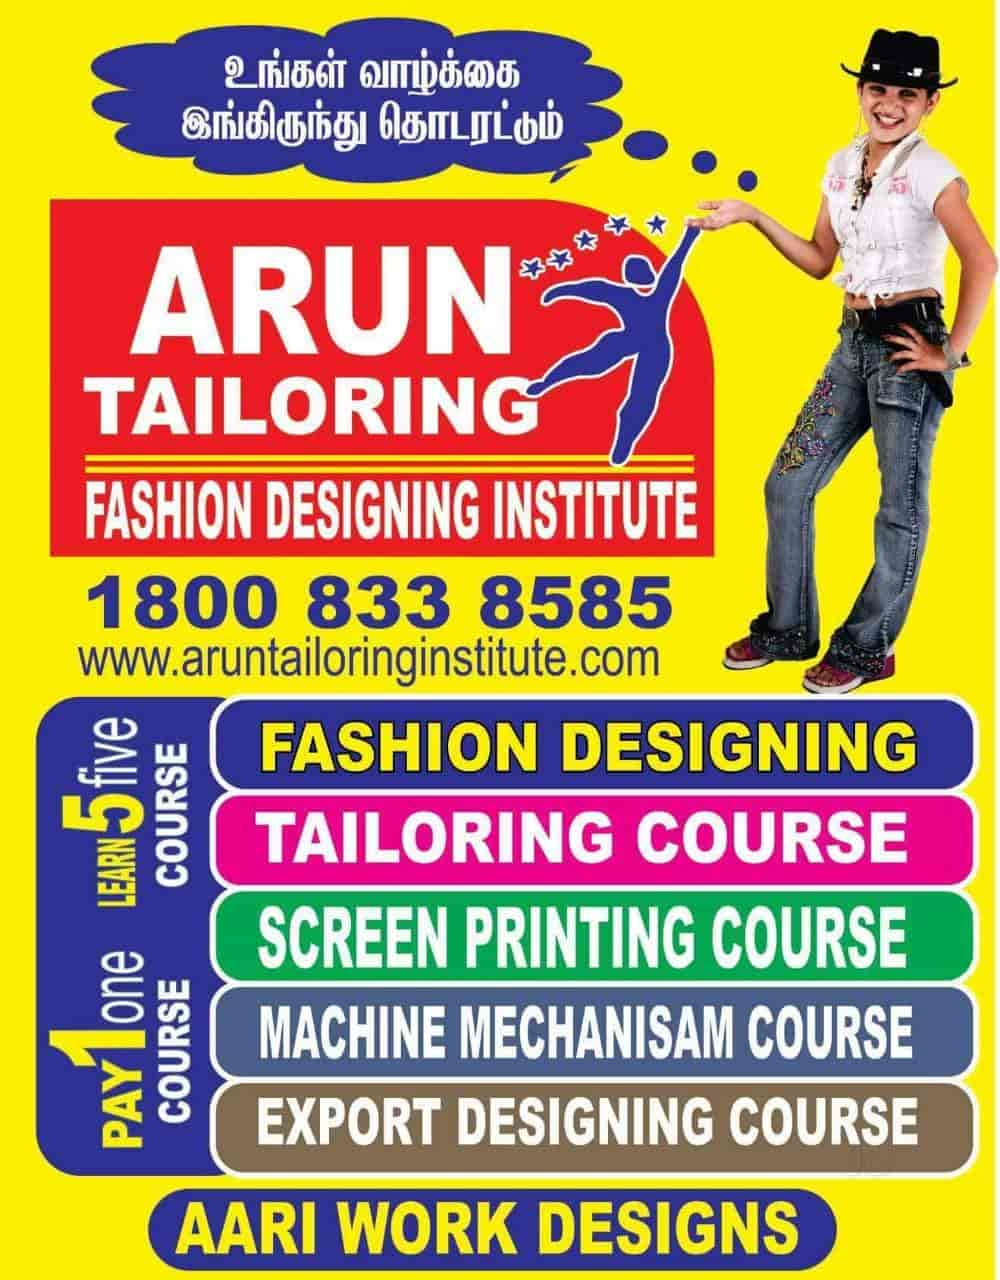 Arun Tailoring And Fashion Designing Institute Adyar Tailoring Classes In Chennai Justdial